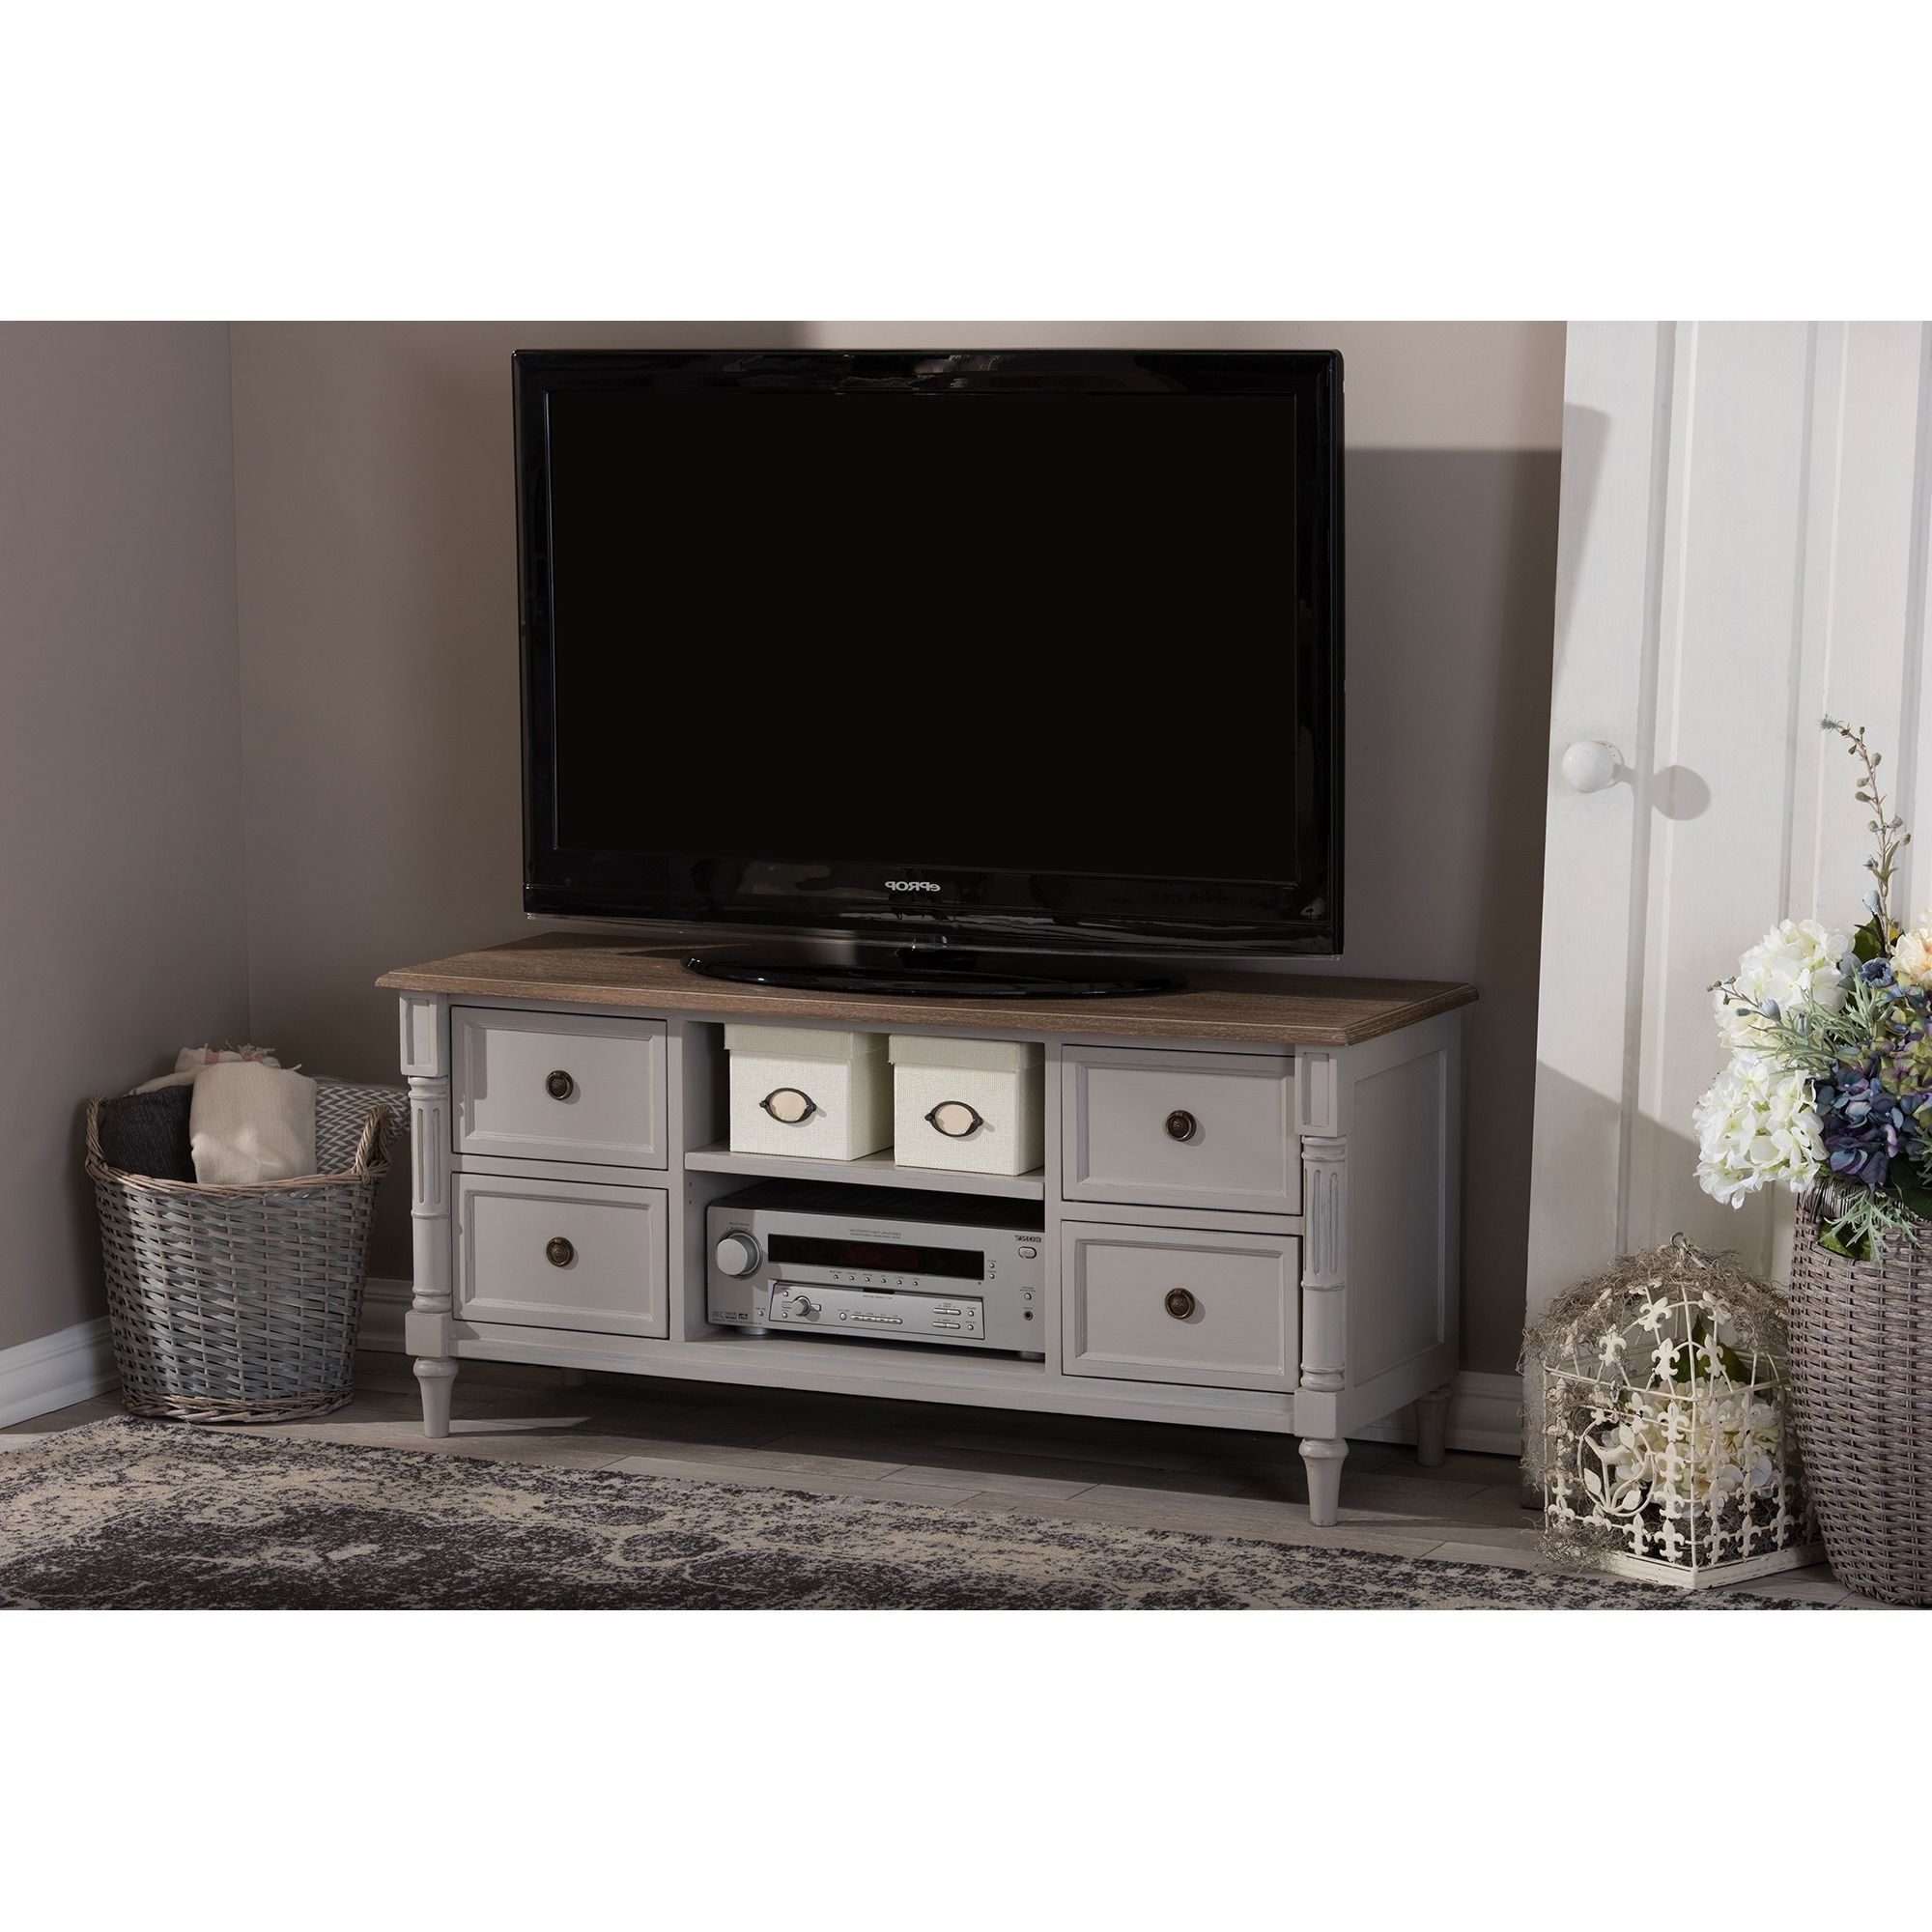 Newest French Country Tv Stands With Rustic, Country Farmhouse Pieces Like The Edouard Tv Cabinet Work To (View 14 of 20)